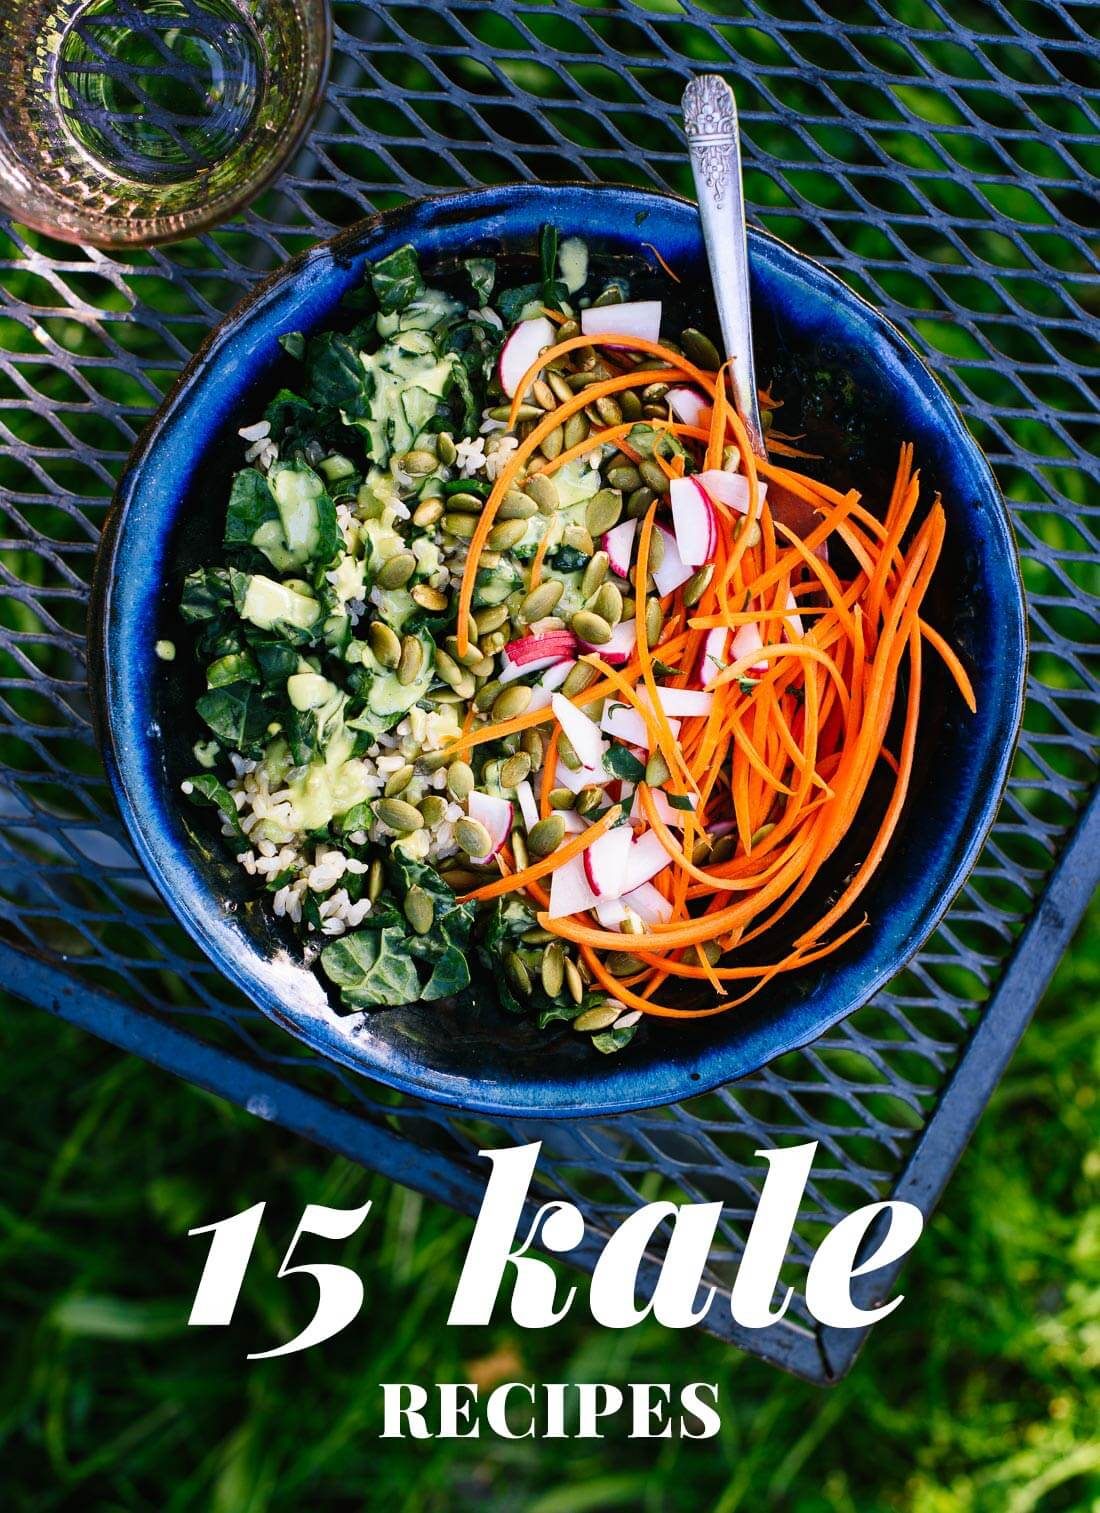 15 Delicious Kale Recipes